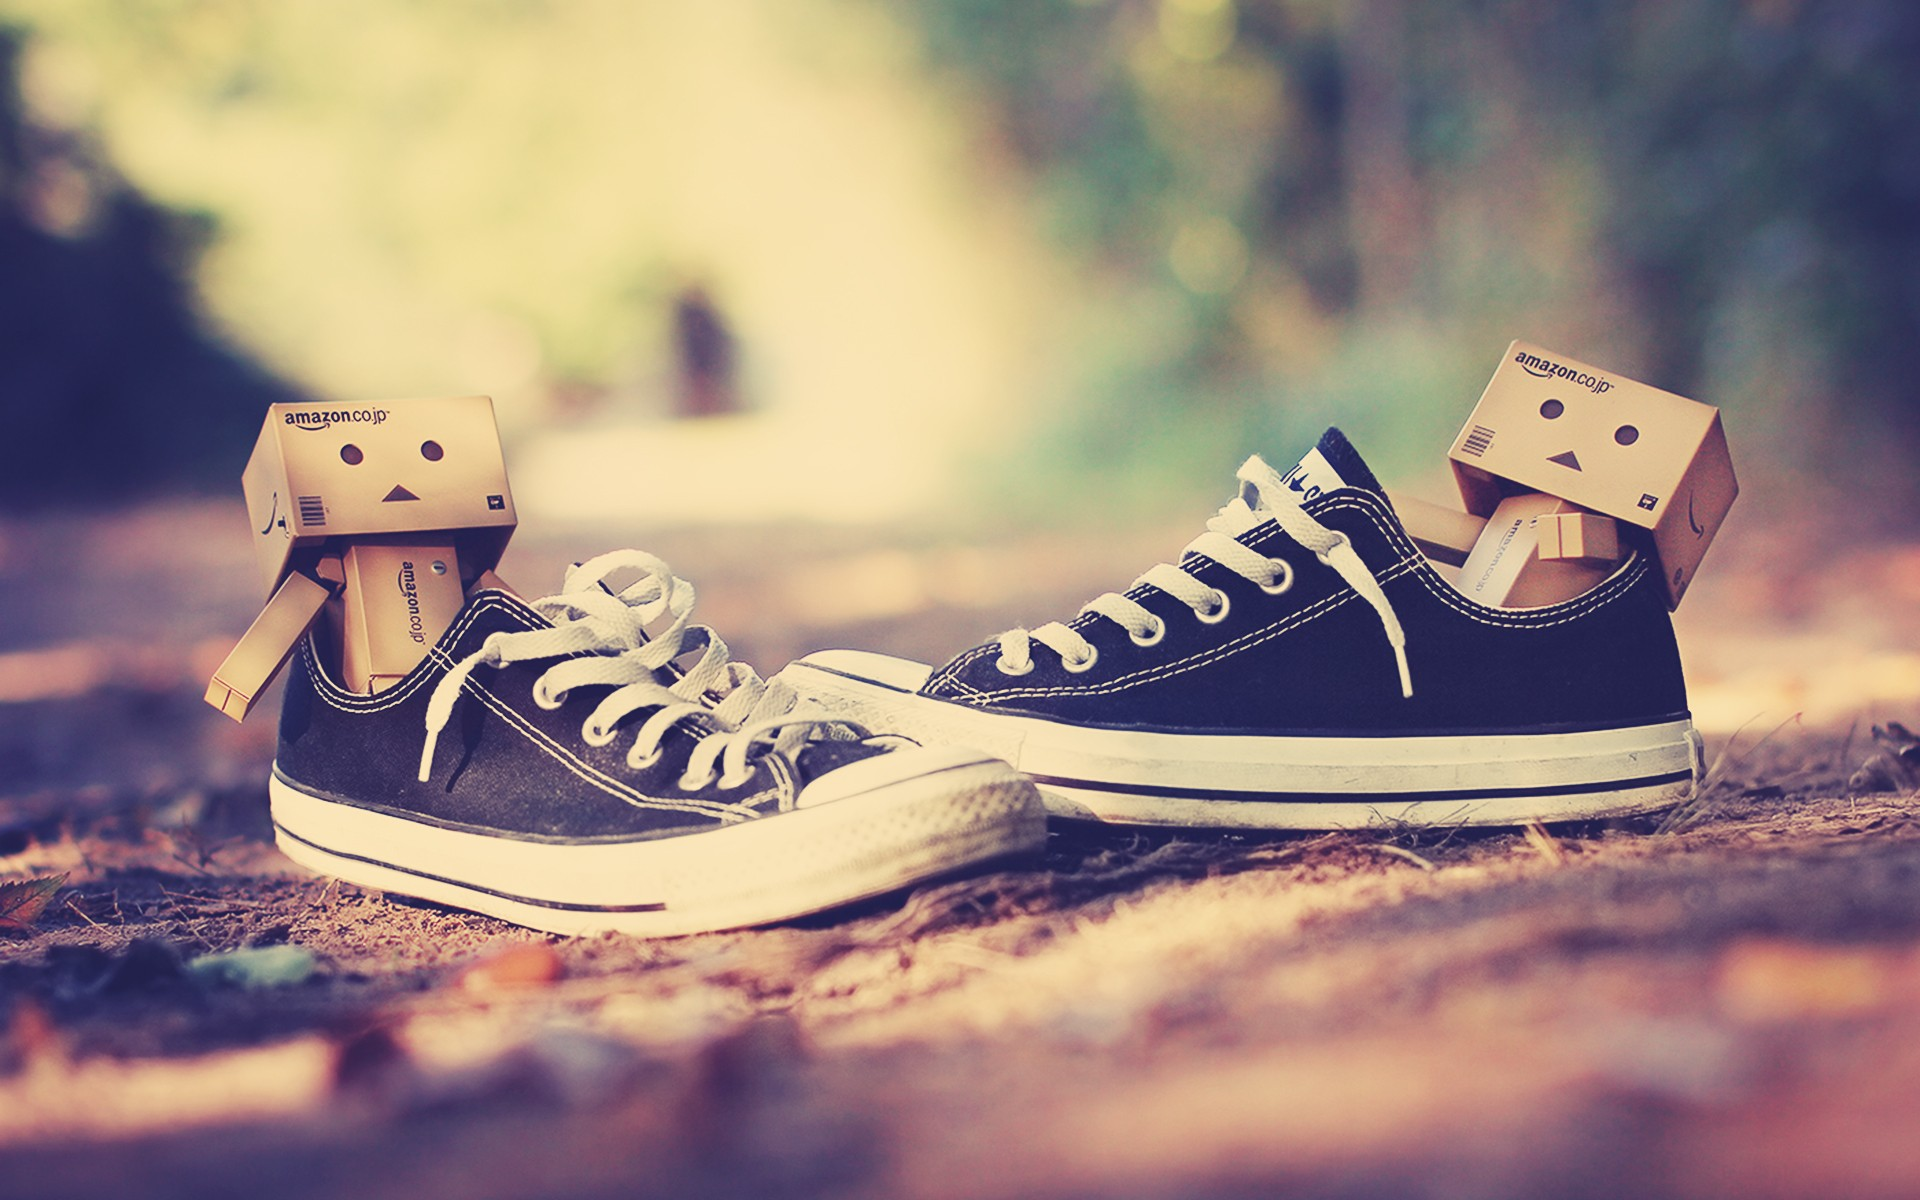 Danbo Converse Wallpaper